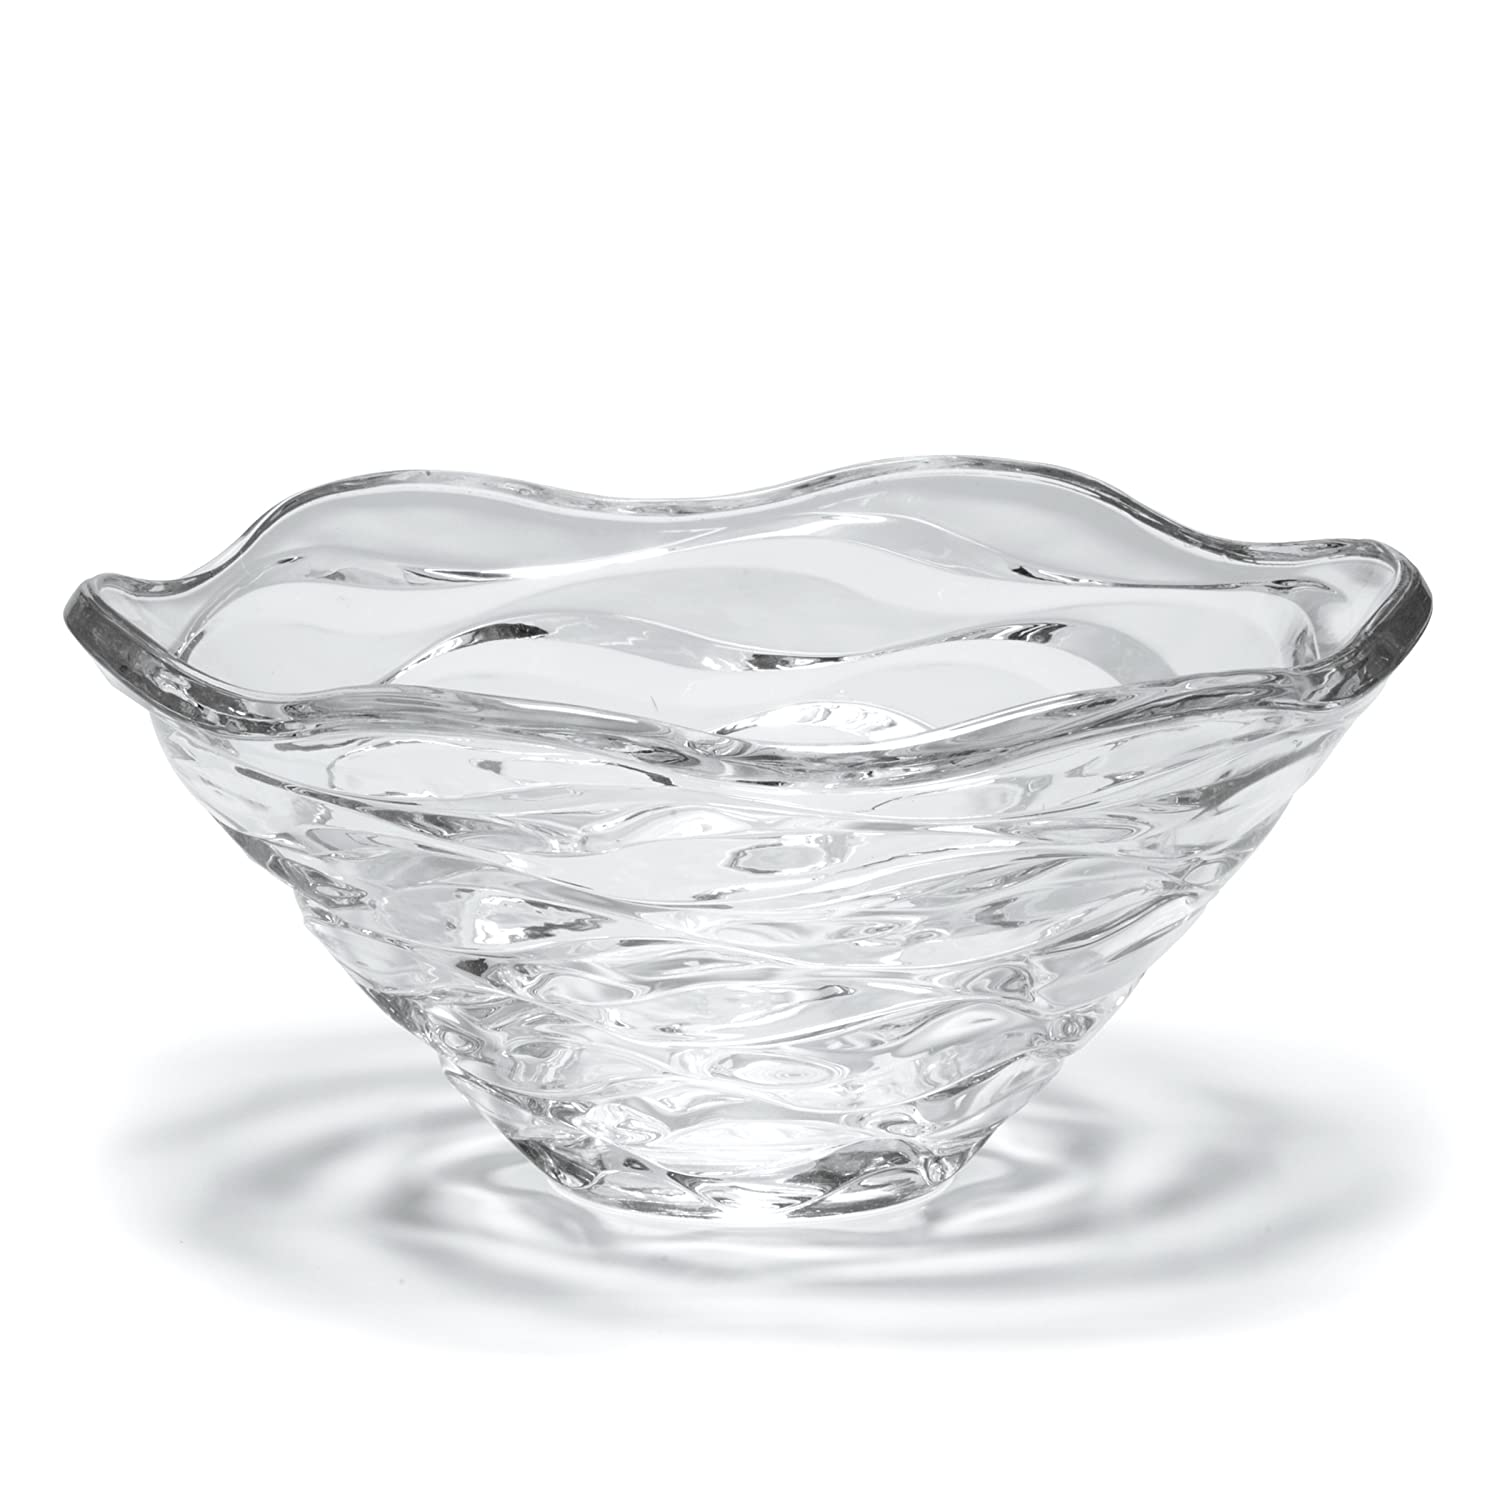 Mikasa Atlantic Crystal Decorative Bowl, 11.5-Inch 5093298